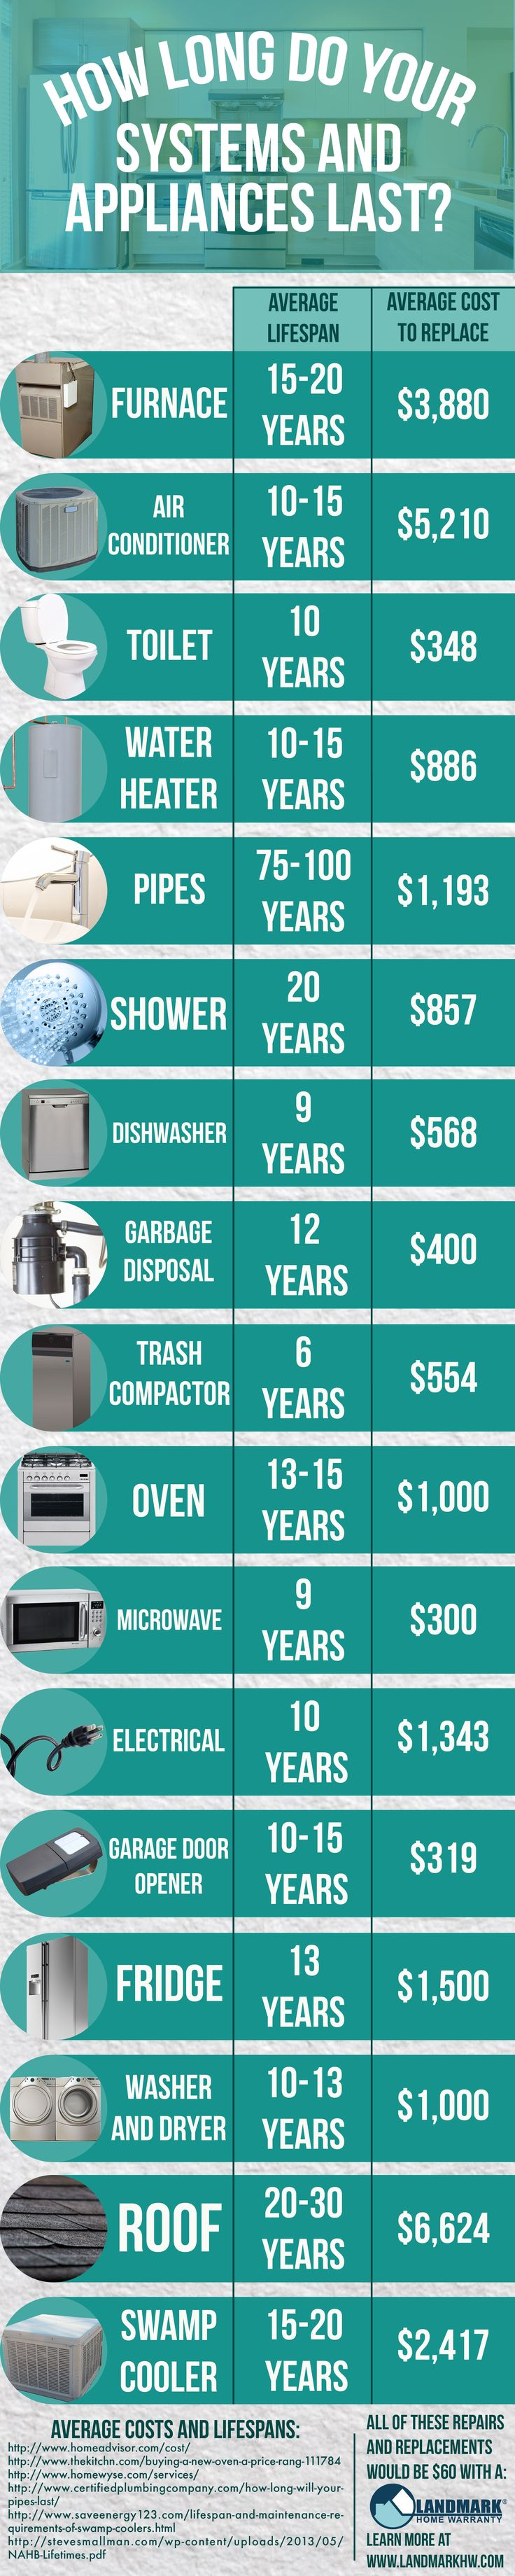 How Long Do Your Home's Systems and Appliances Last?